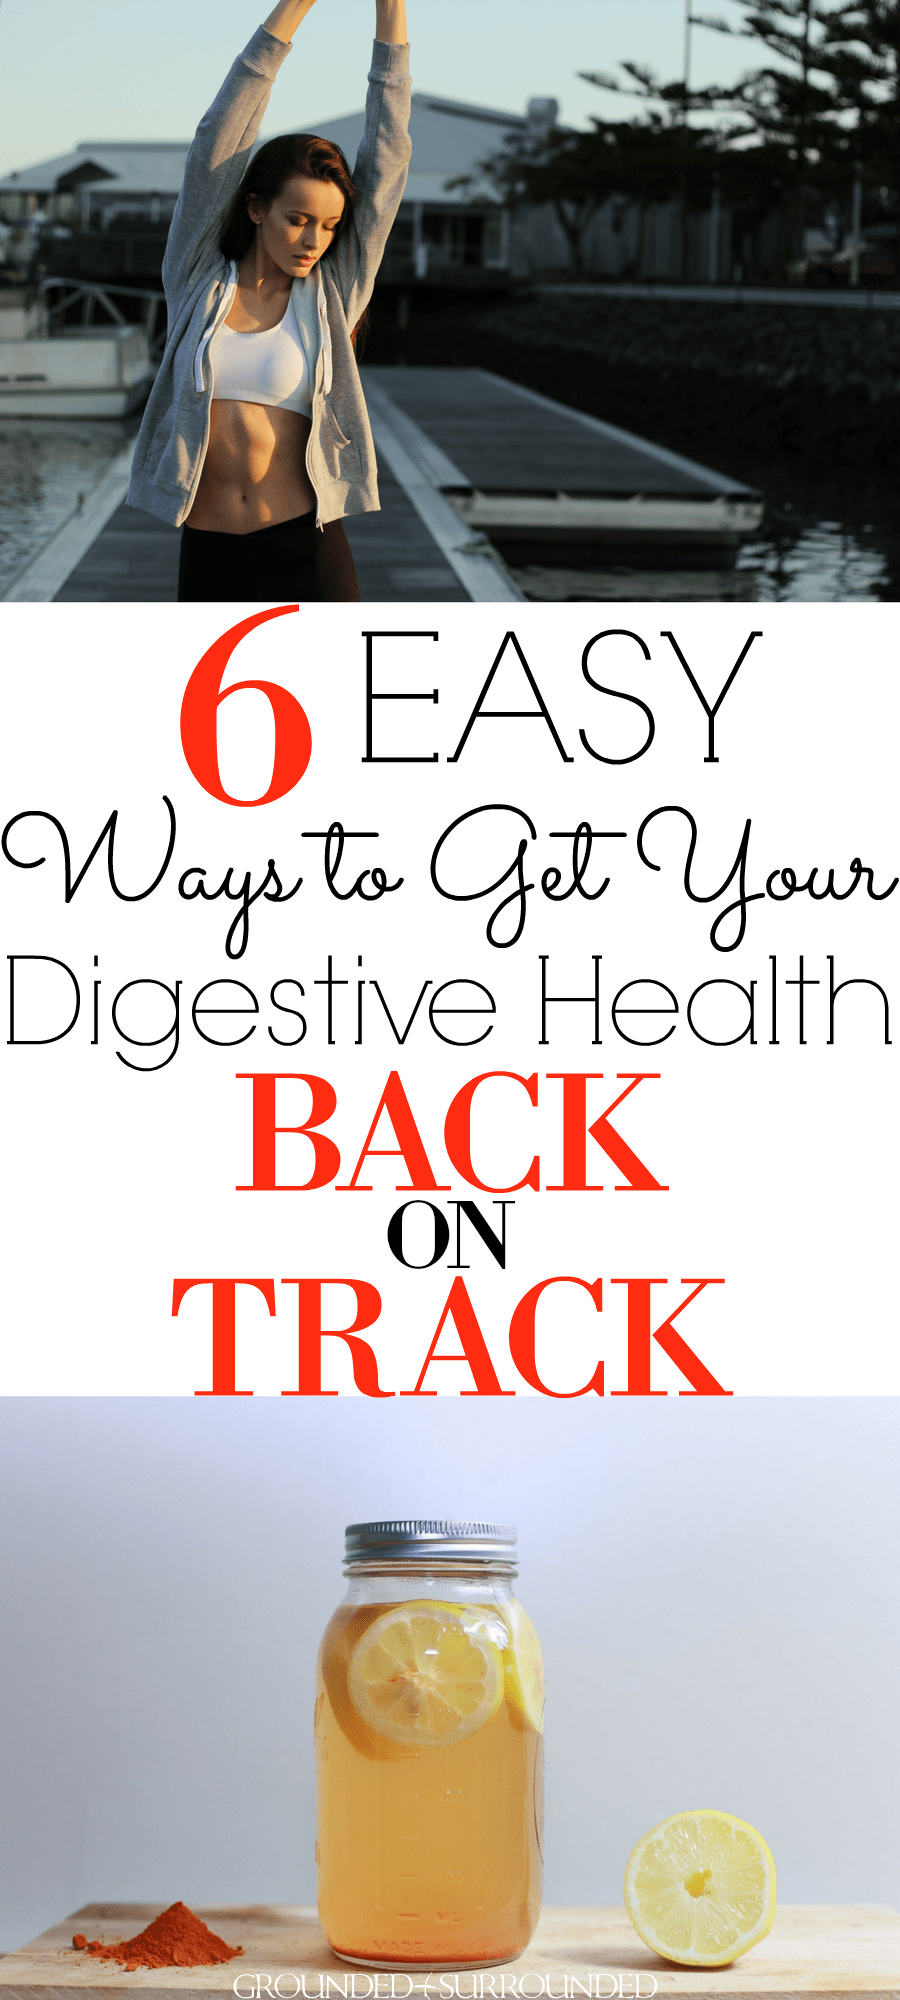 6 Easy Ways to Get Your Digestive Health Back on Track   How you feeling? Blah? Tummy problems? Want to improve how you feel with a few simple natural remedies? If you suffer with constipation, leaky gut, gas, *gasp* poop issues, or any other signs of digestion issues you need to try these simple tips to improve your tummy troubles. Probiotics   Detox   Bloating   Cleanse   Supplements   Fiber   Water   Hydration